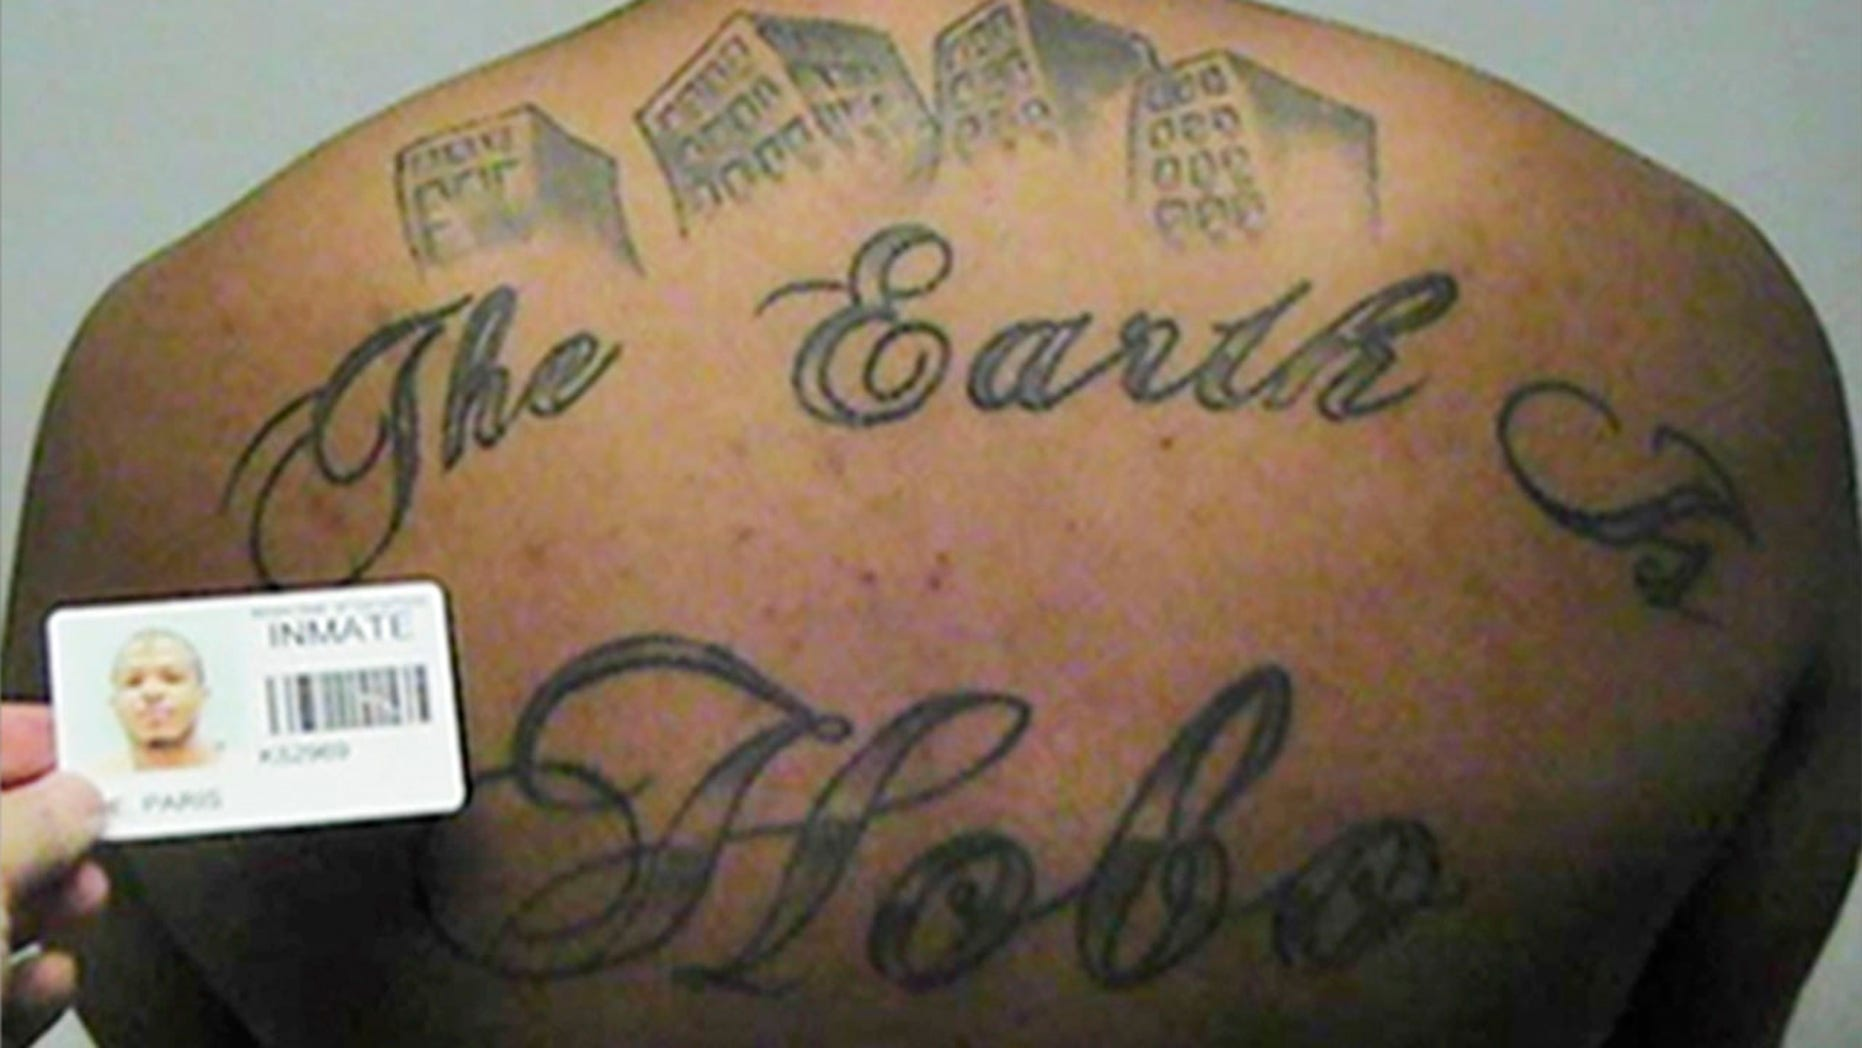 """This undated file photo shows Paris Poe's back tattoo that reads """"The Earth Is Our Turf"""", and Hobo."""